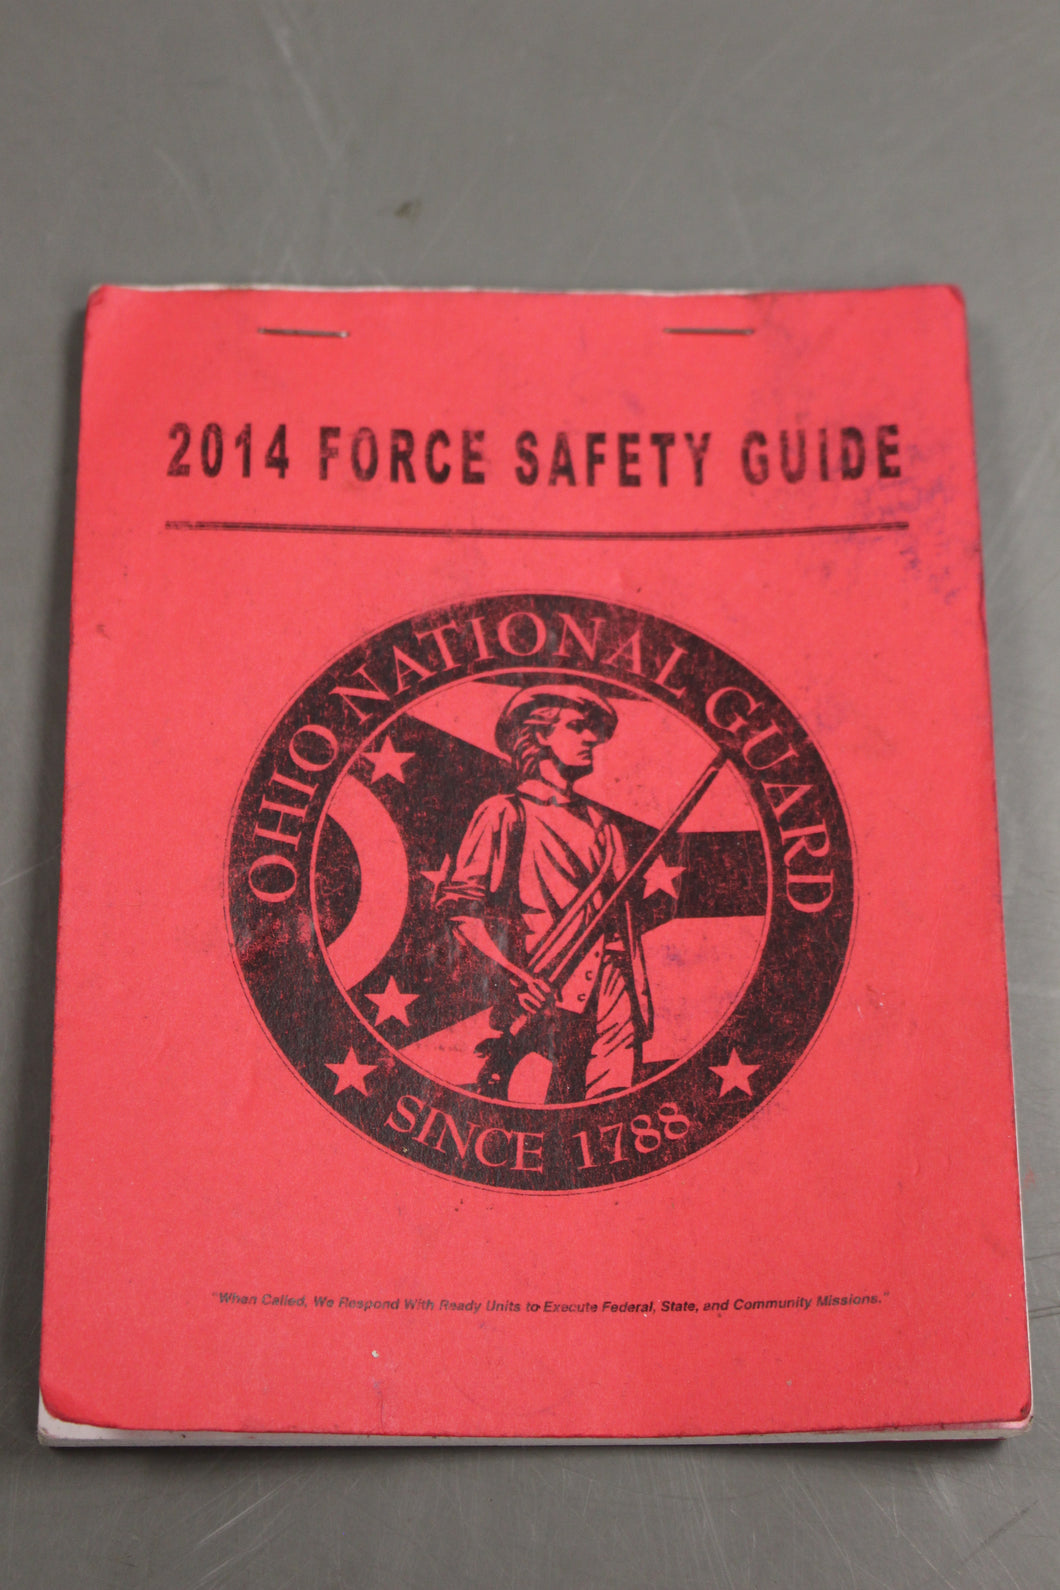 Ohio National Guard 2014 Force Safety Guide